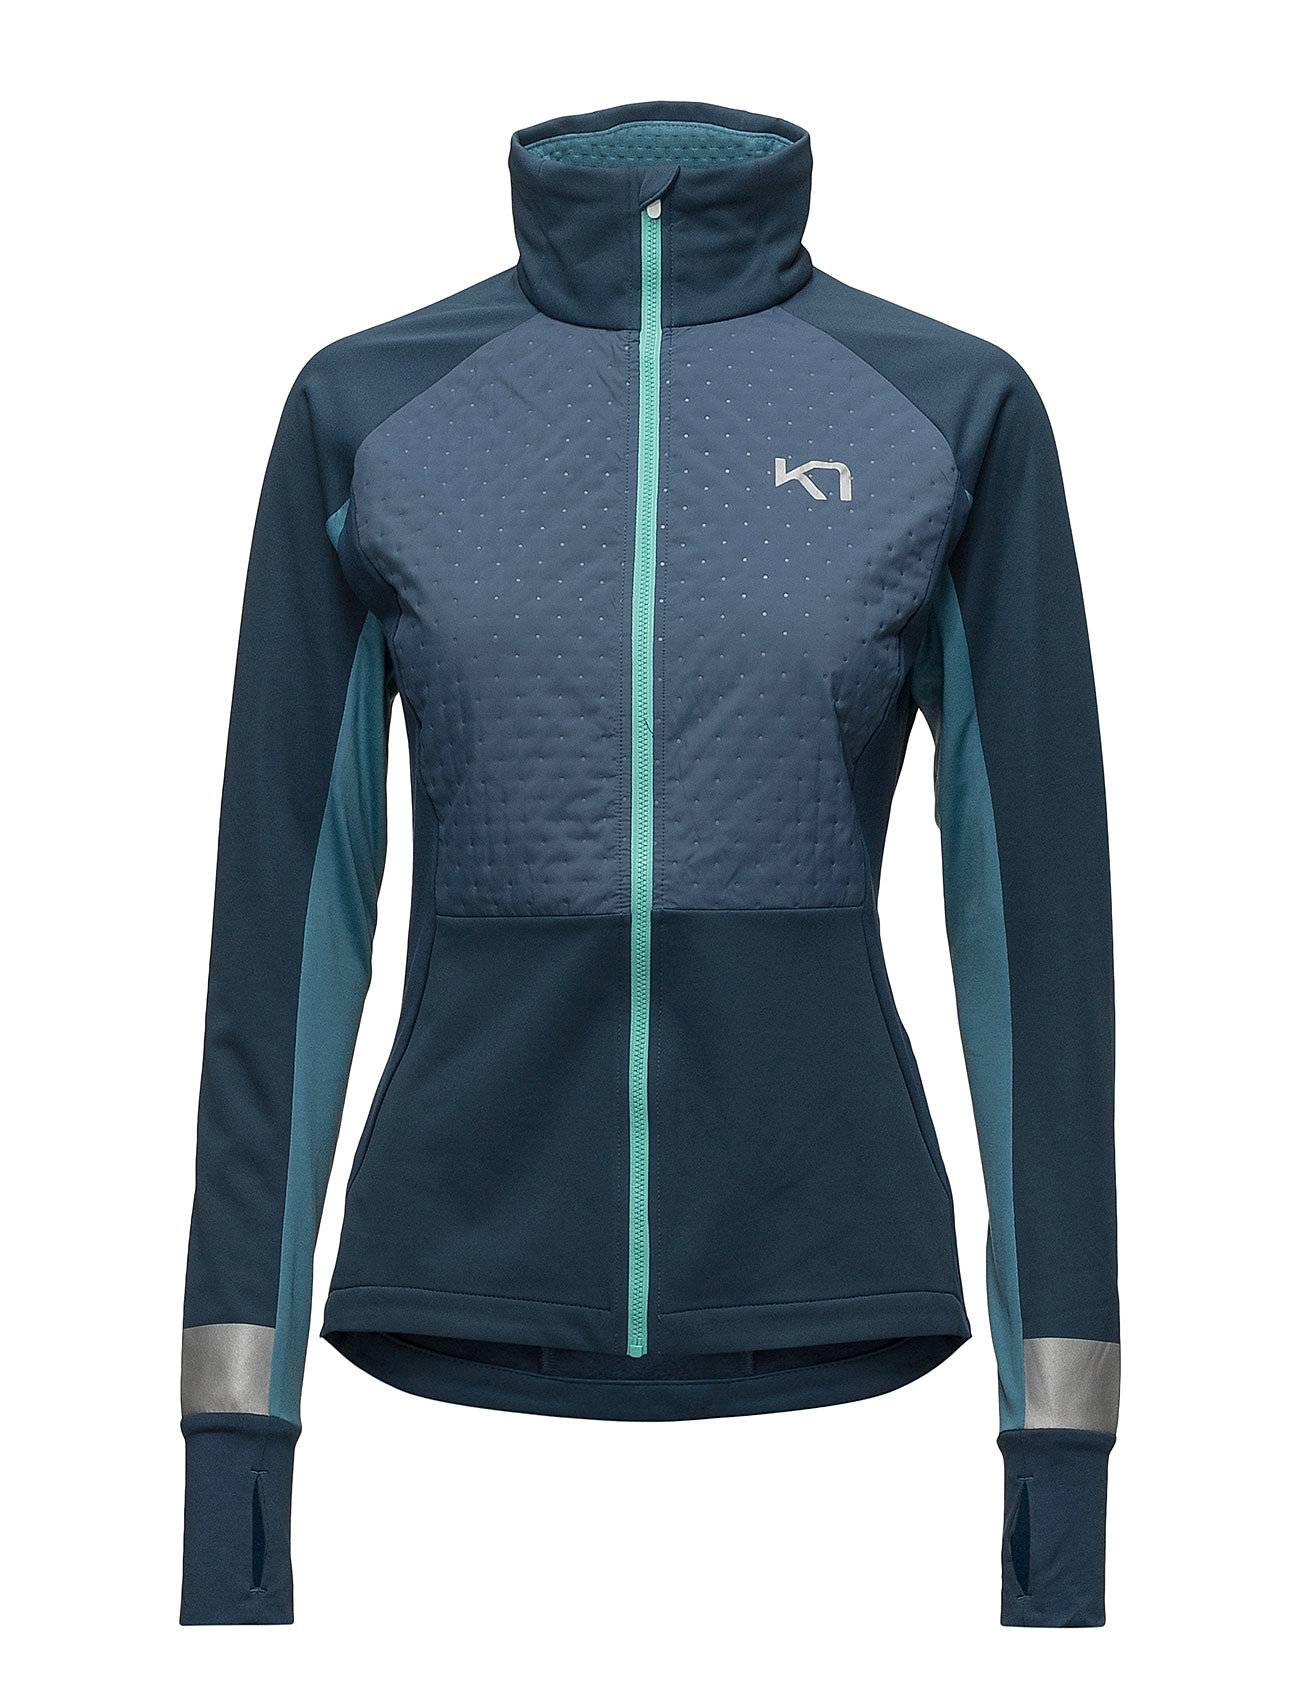 Kari Traa Toril Jacket